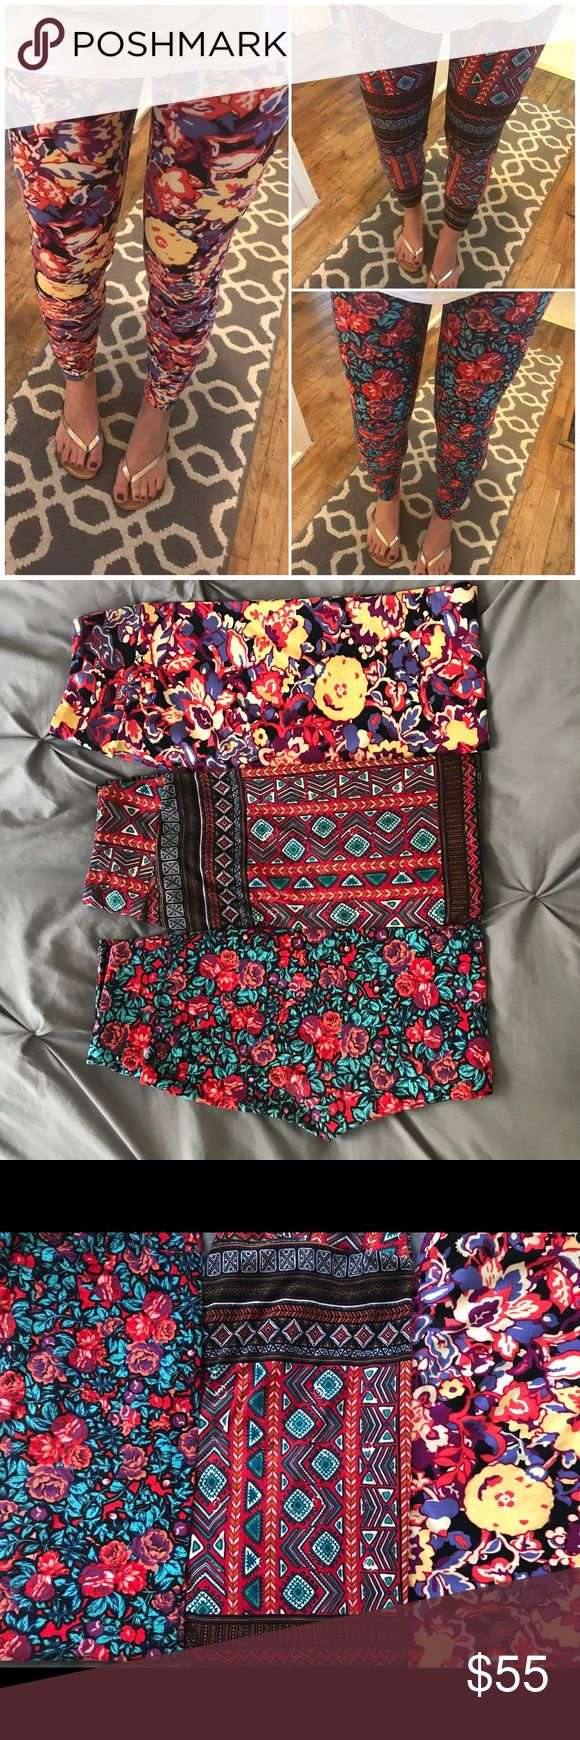 EUC Lularoe OS leggings!  LOT OF 3! 💃🏽 EXCELLENT CONDITION!  Set of three Lularoe leggings!  Two floral and one Aztec!    Practically new!  Each worn once only!  Each washed once only too!  Cold delicate cycle inside out and alone. Hung dry!  Hardly any wear. Rose pair shows some in thigh area. Other two I personally can't see much!  Limited to four pictures but let me know if I can take more!    Ask about bundling!  Major lula destash event this weekend!  More likely to come today…